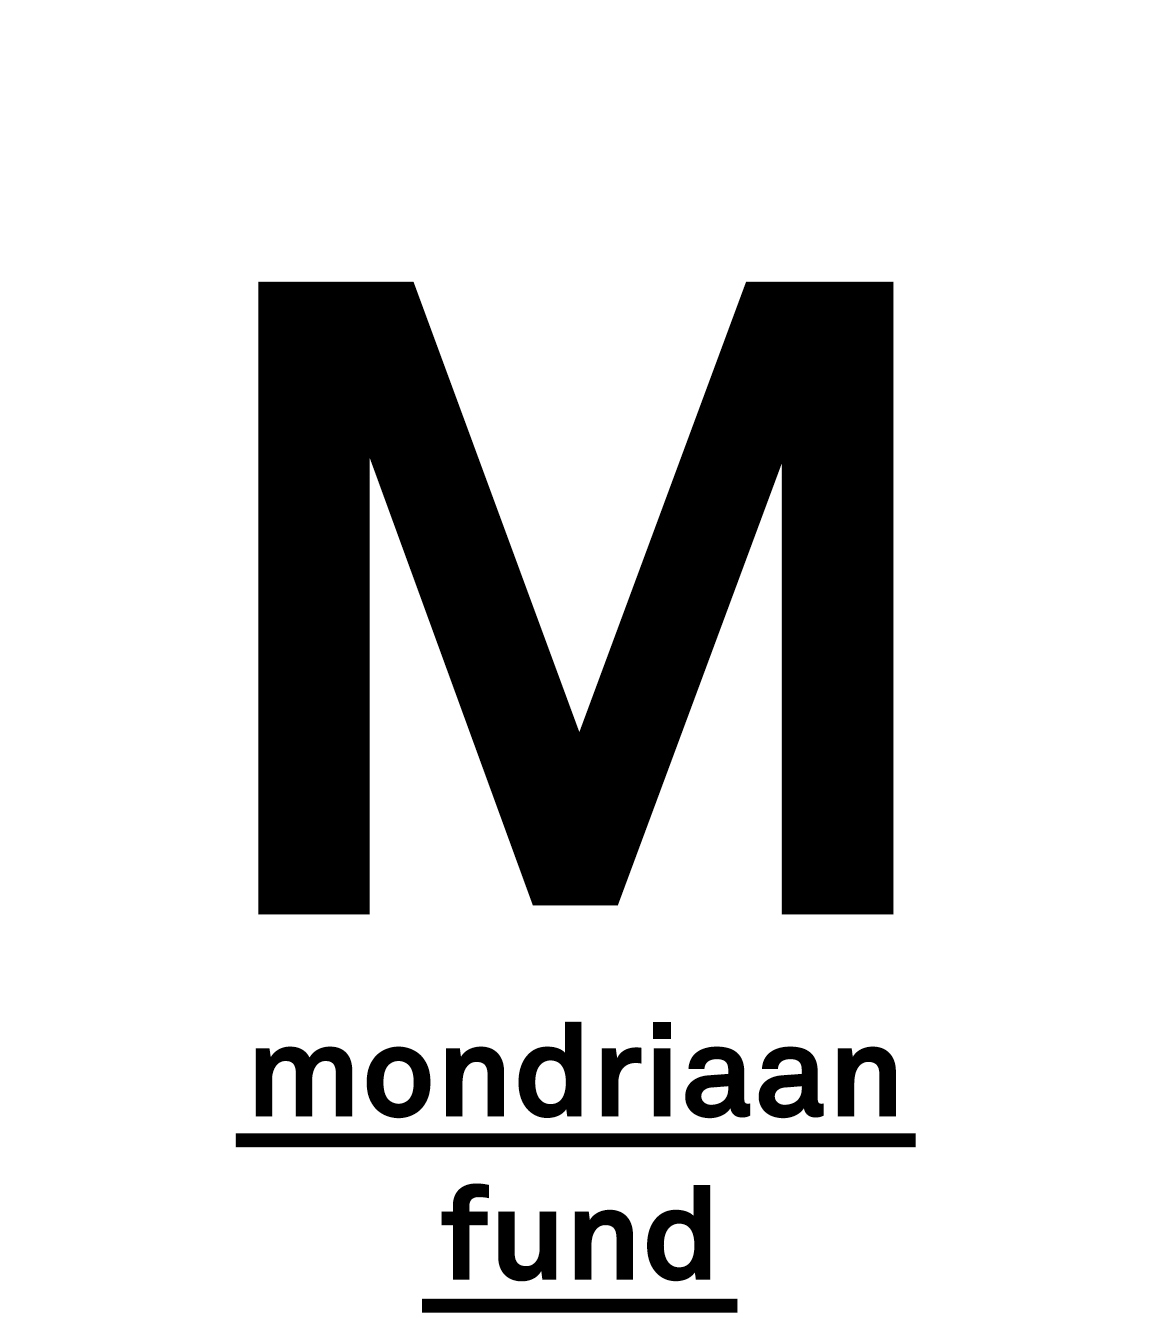 Funded by Mondriaan